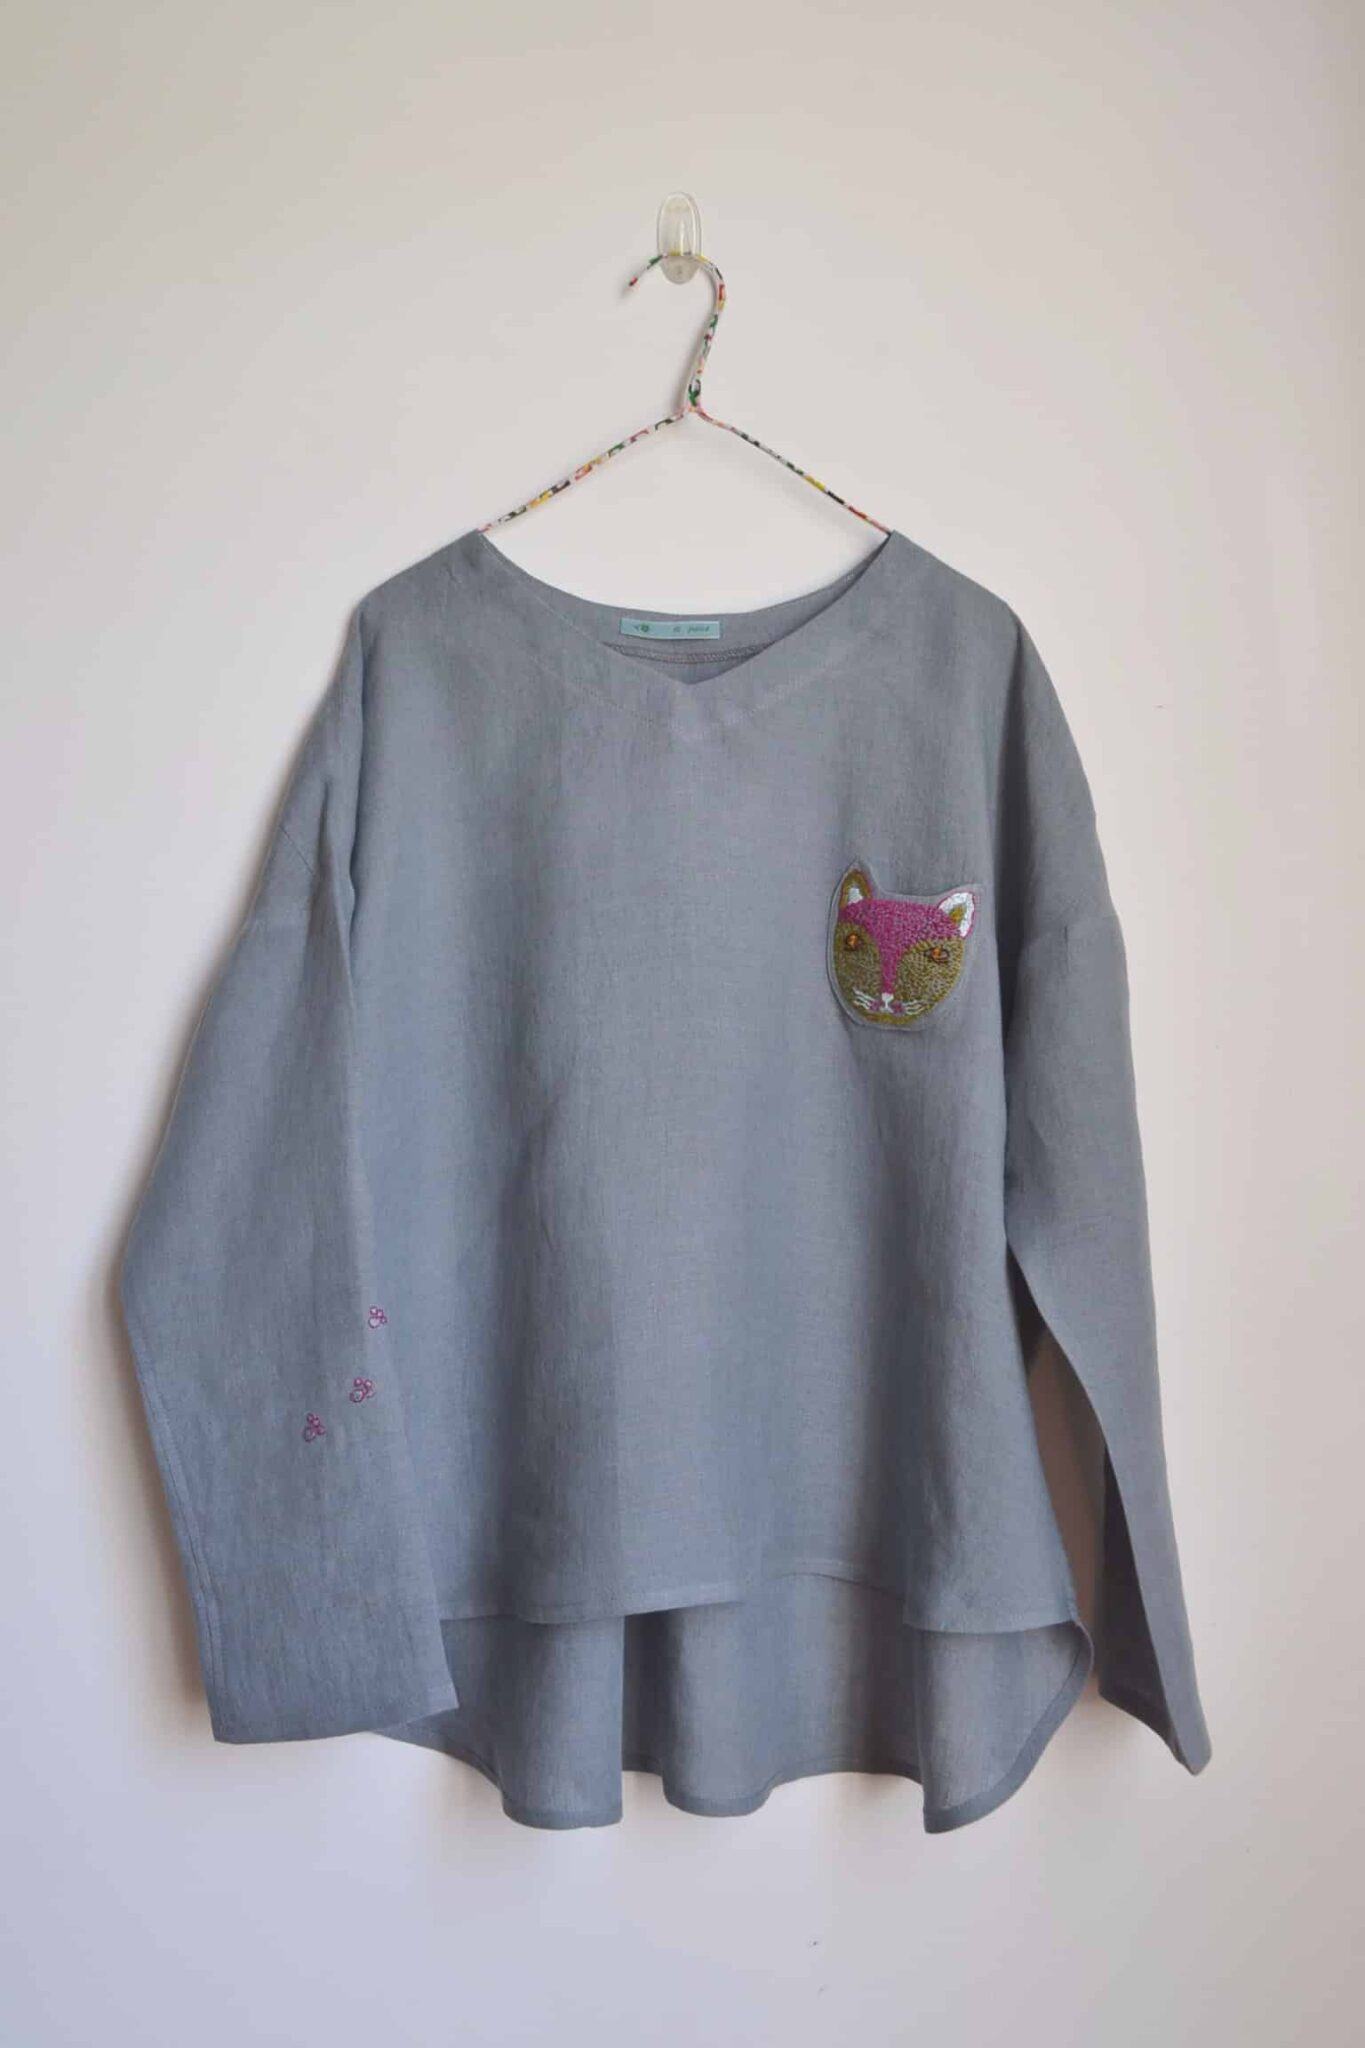 Meow Pullover (One Size), Cat Embroidery In Smokey Grey Linen, By à Pois